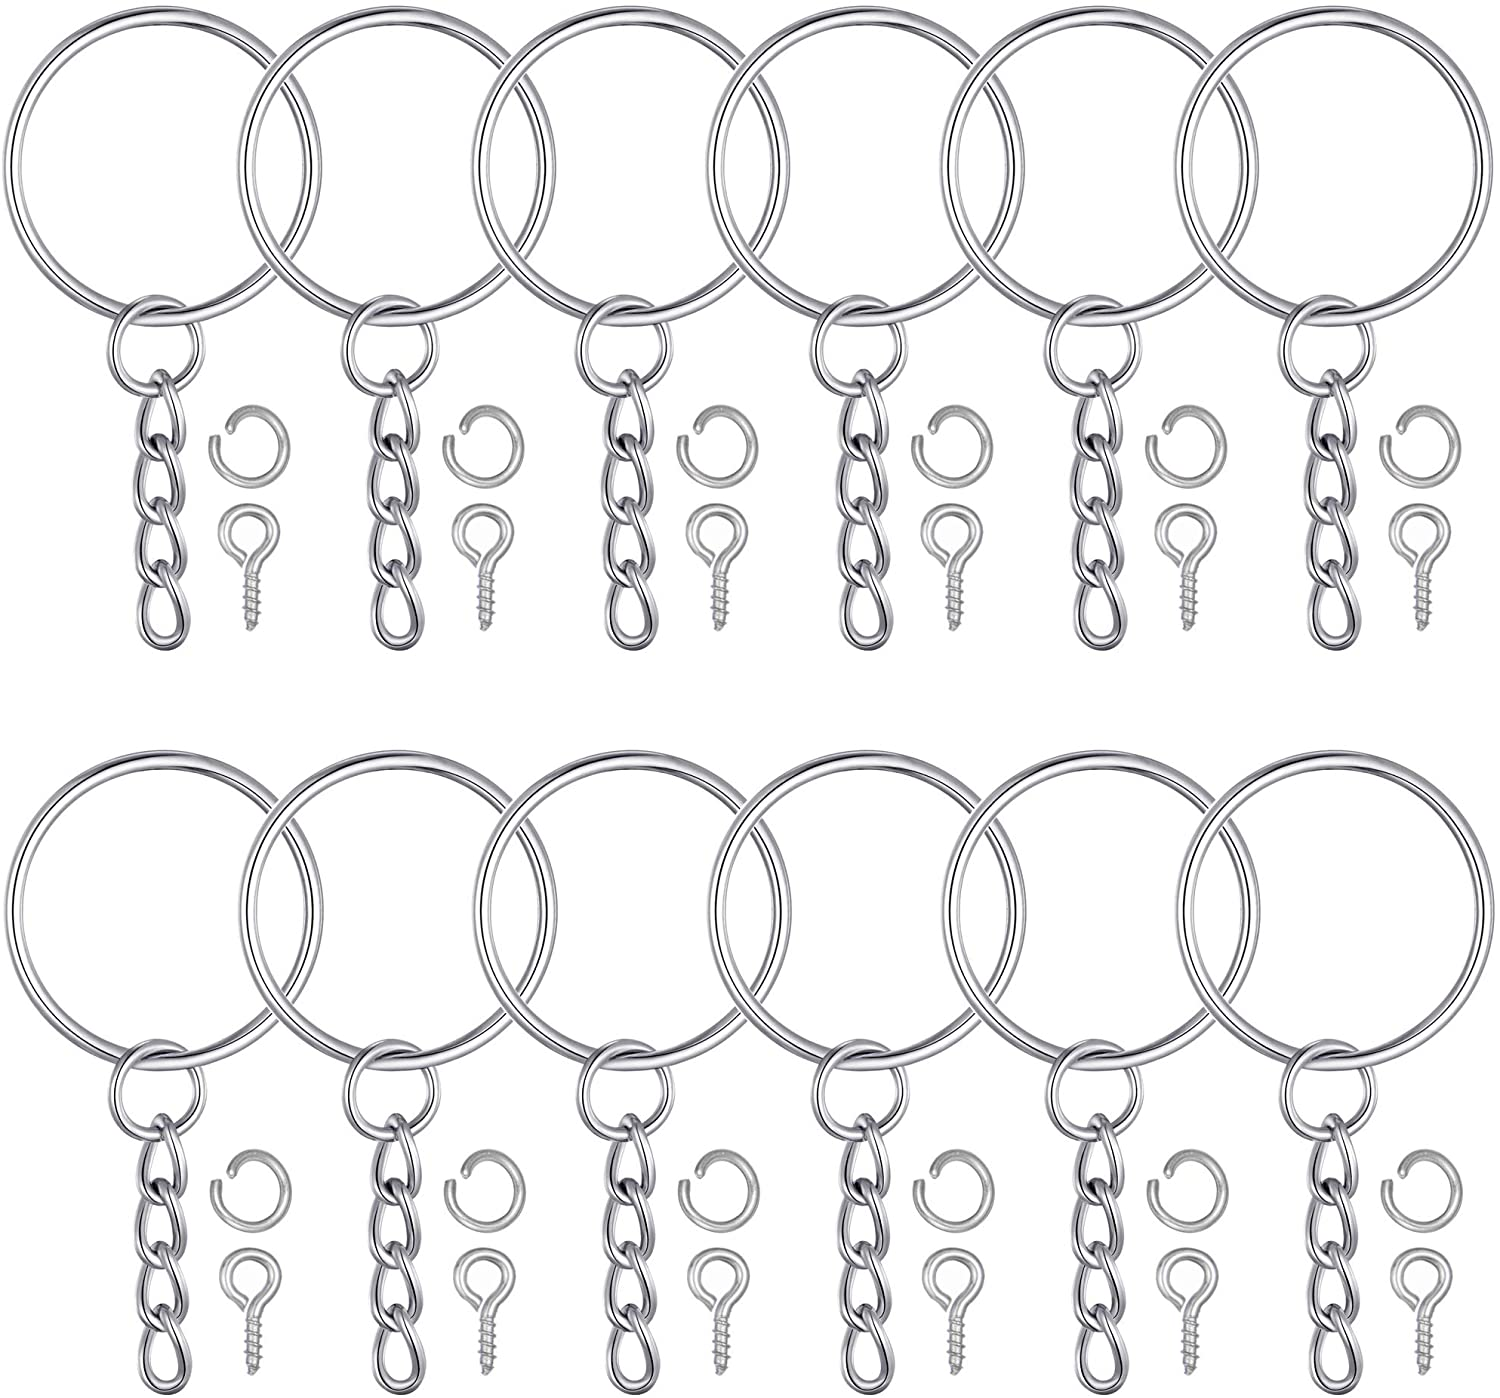 Raleigh Mall 100Pcs Keychain Rings 1 Inch 25mm Silver Key with Fashionable 10 Chain